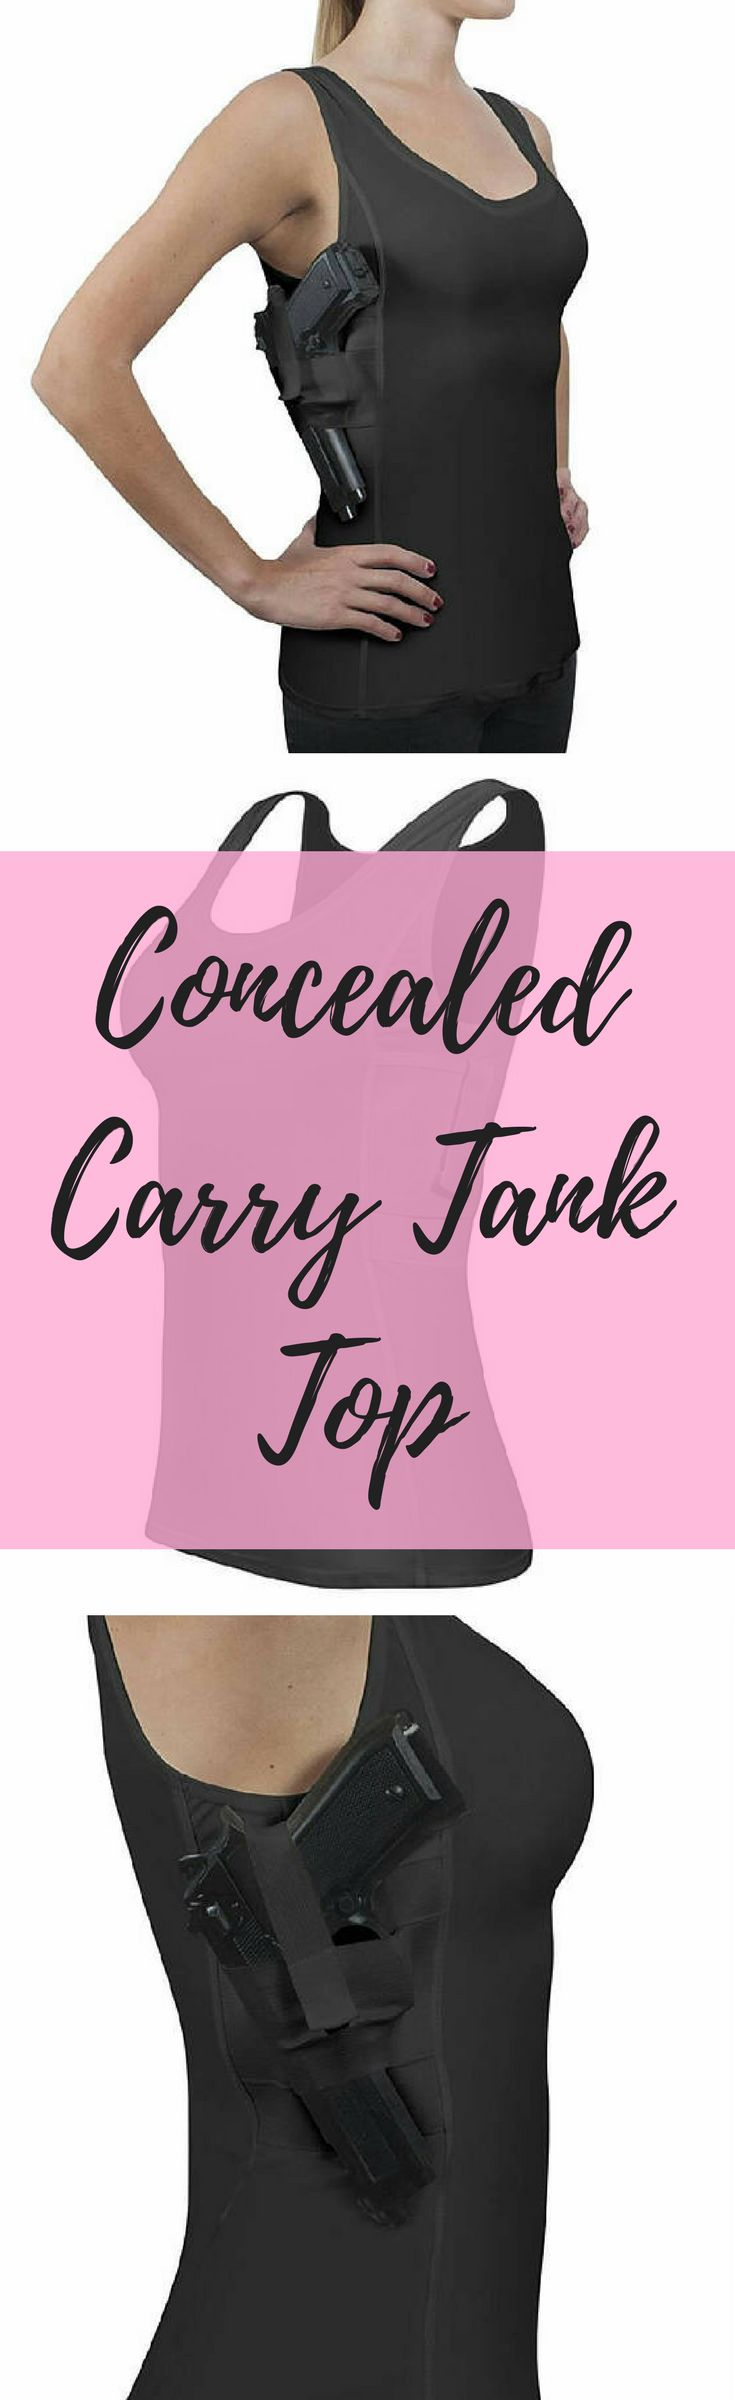 Concealed Carry Black Holster Shirt for Women | Compression Tank Top with Concealment Power | Ambidextrous & Comfortable #ad #conceal #concealment #carry #weapons #clothing #clothingaccessories #womens #womensfashion #womenswear #tactical #holster #tank #tanktop